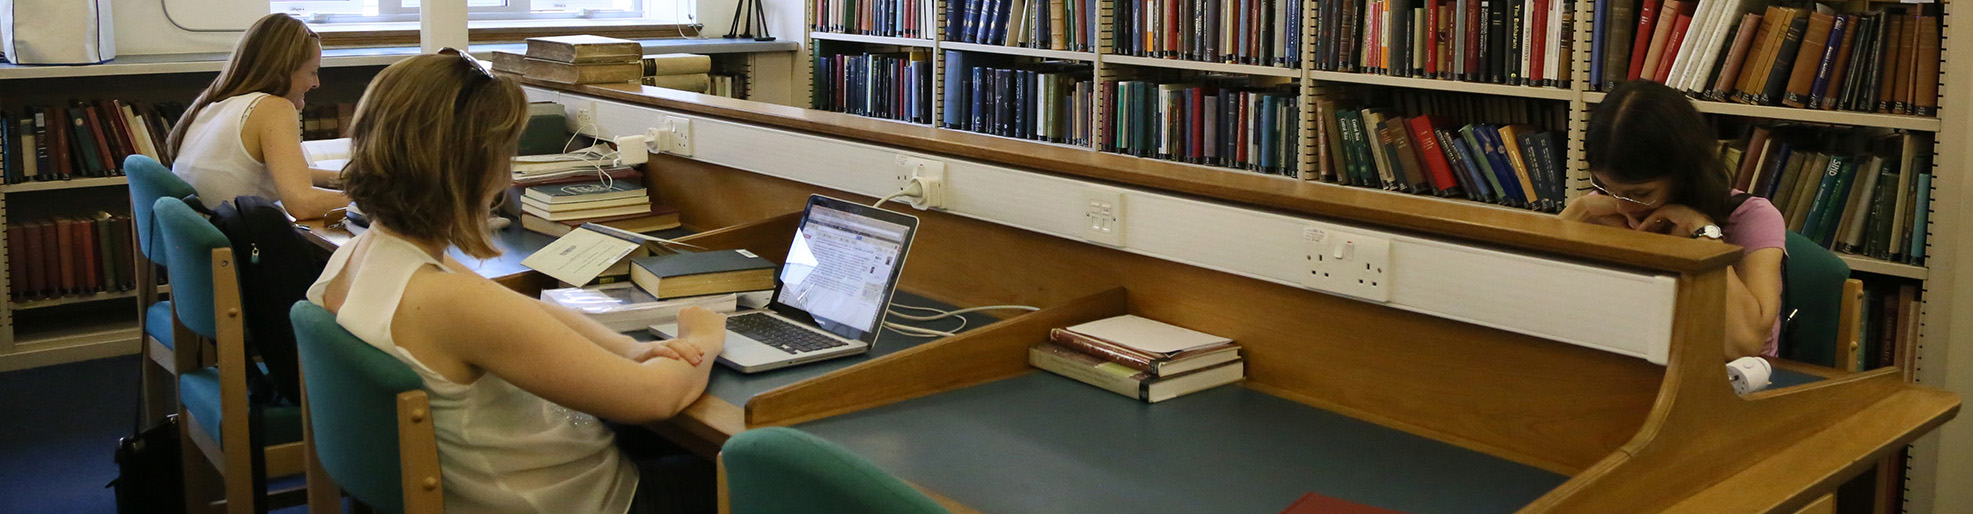 Two students sit next to each other at a three-seater library desk